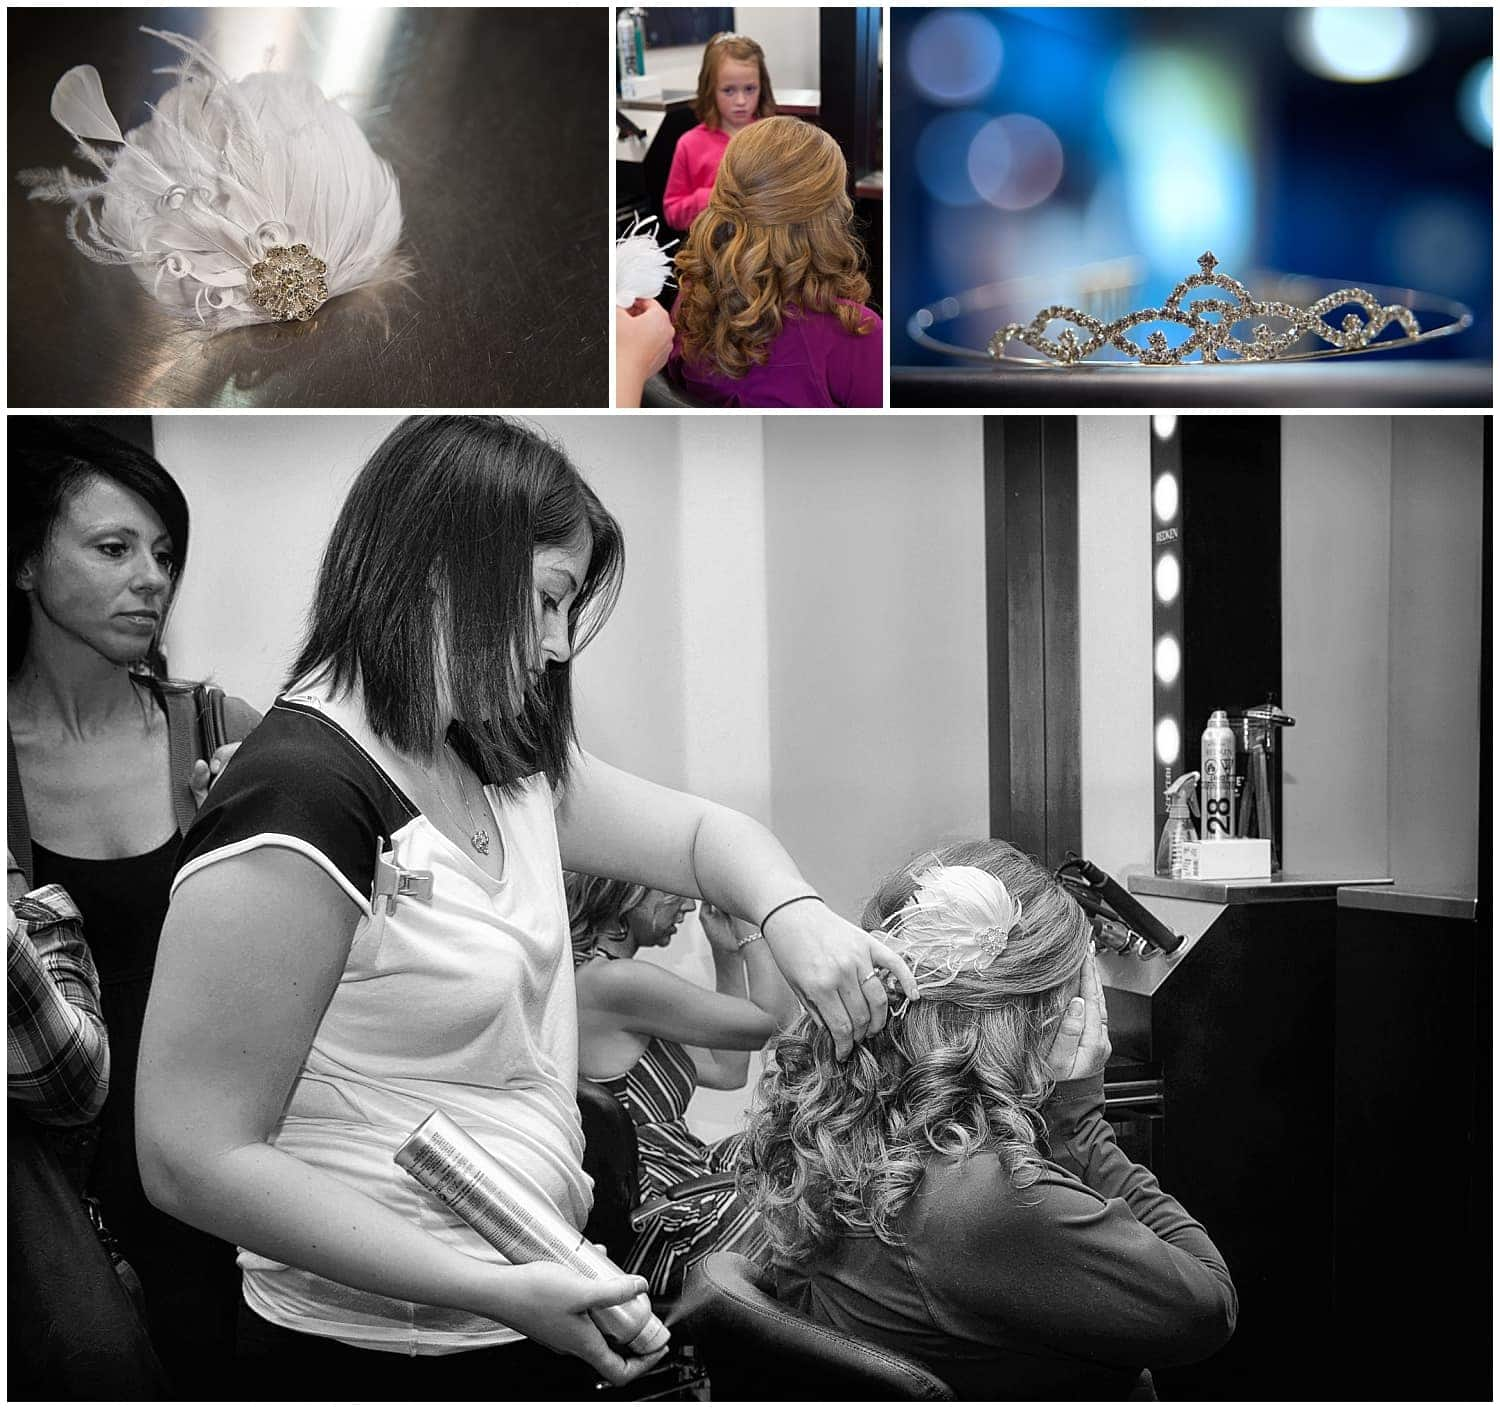 The bride getting her hair done at a salon in Halifax NS for her wedding day.